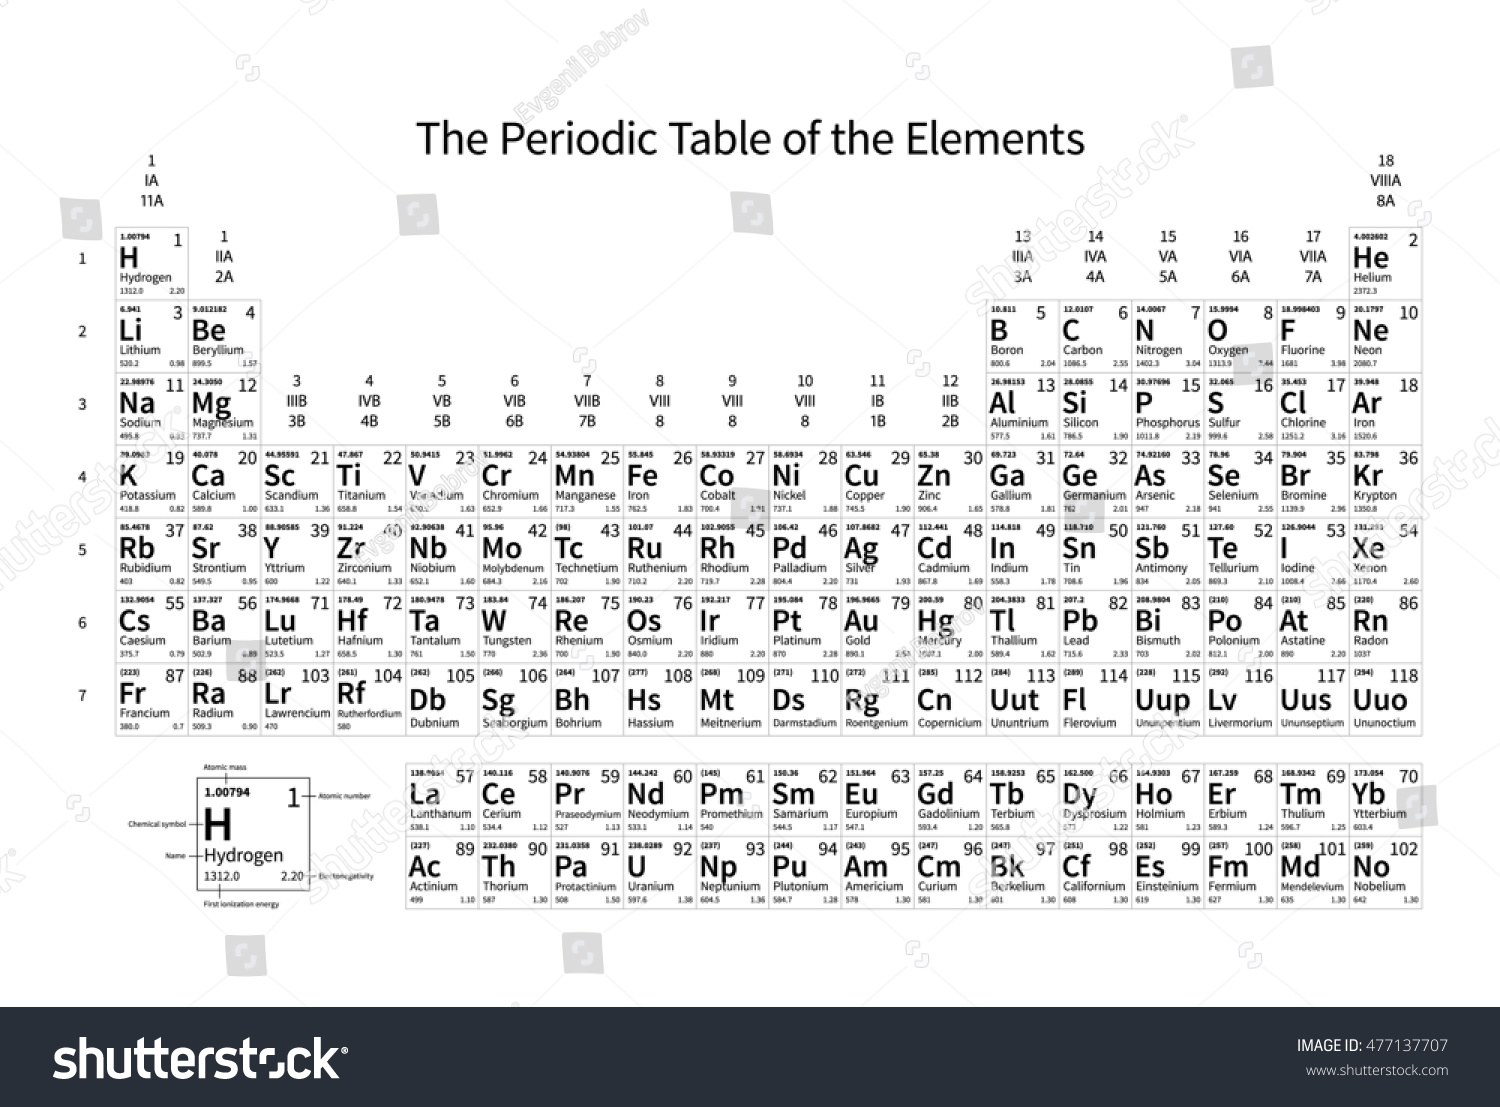 Black white monochrome periodic table elements stock illustration black and white monochrome periodic table of the elements with atomic mass electronegativity and 1st urtaz Image collections